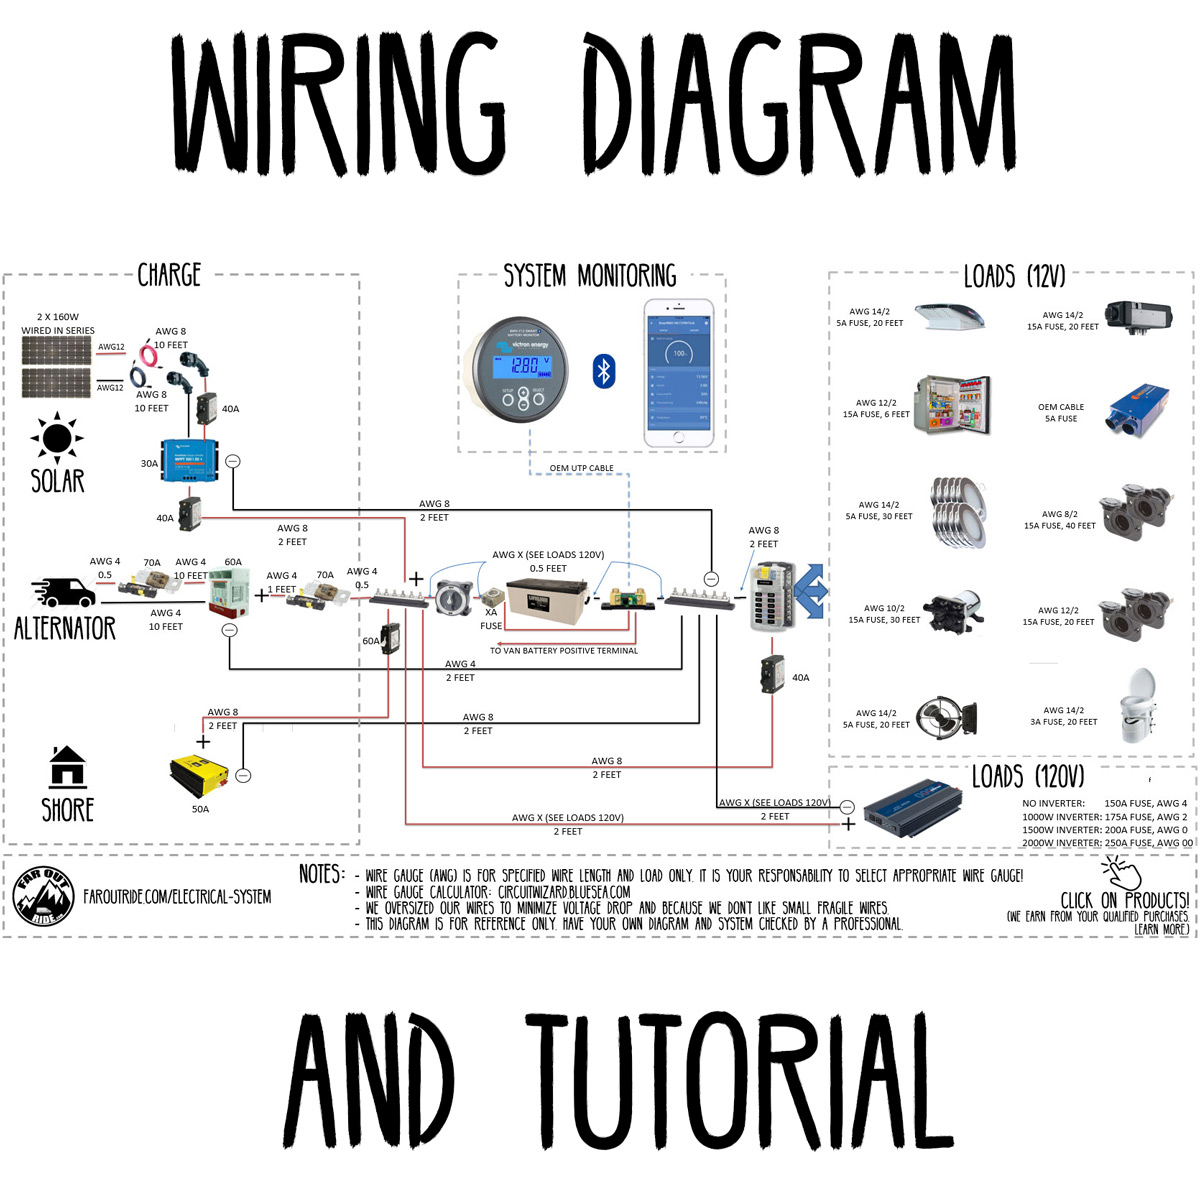 picture wiring diagram wire center u2022 rh abetter pw